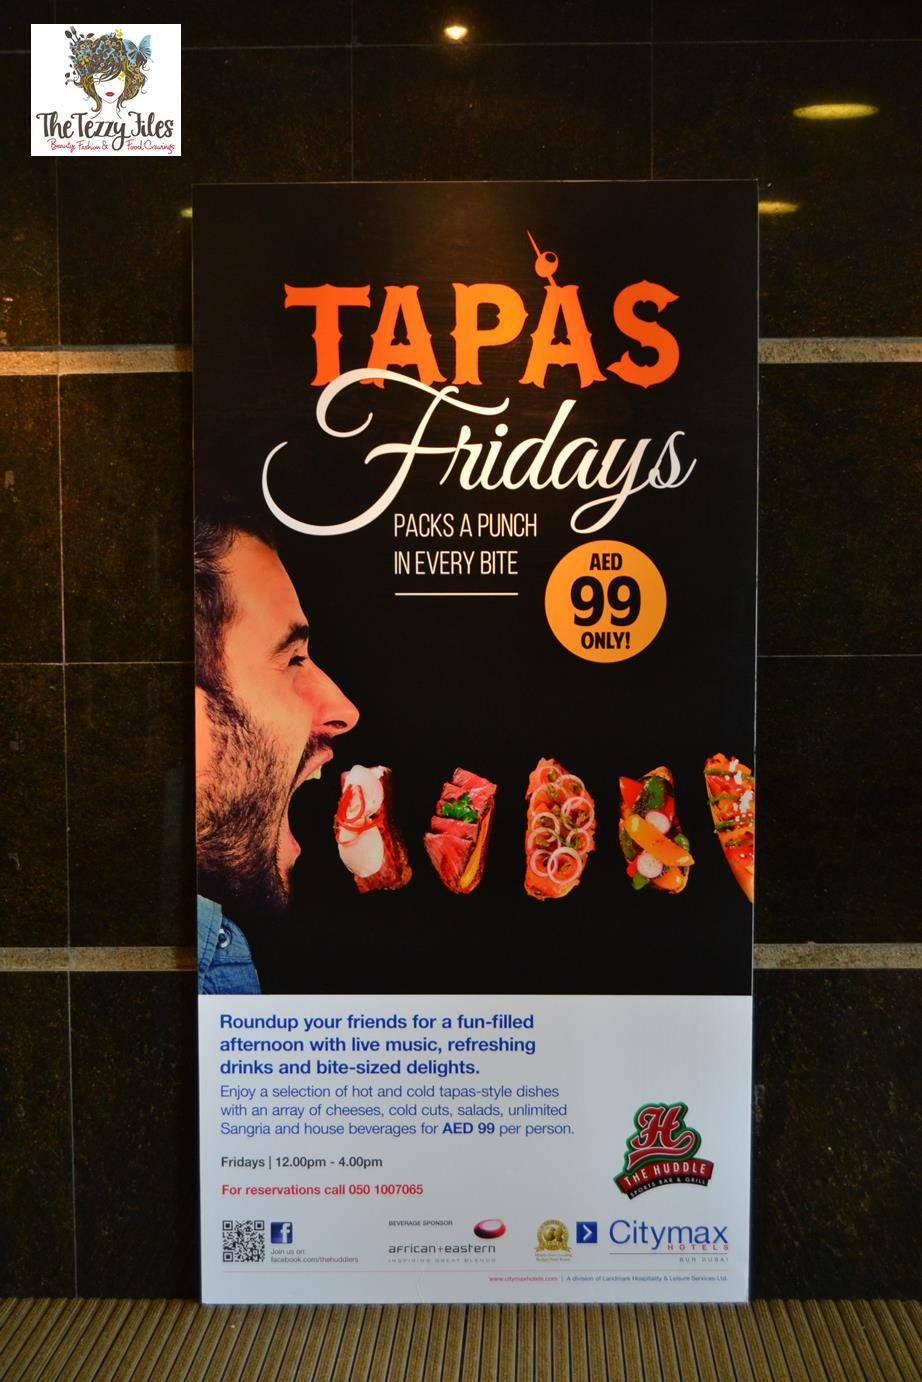 Huddle Bar Citimax Bur Dubai Friday Tapas Brunch review AED 99 all you can eat and drink alcohol Spanish bar sports bar live music (17)